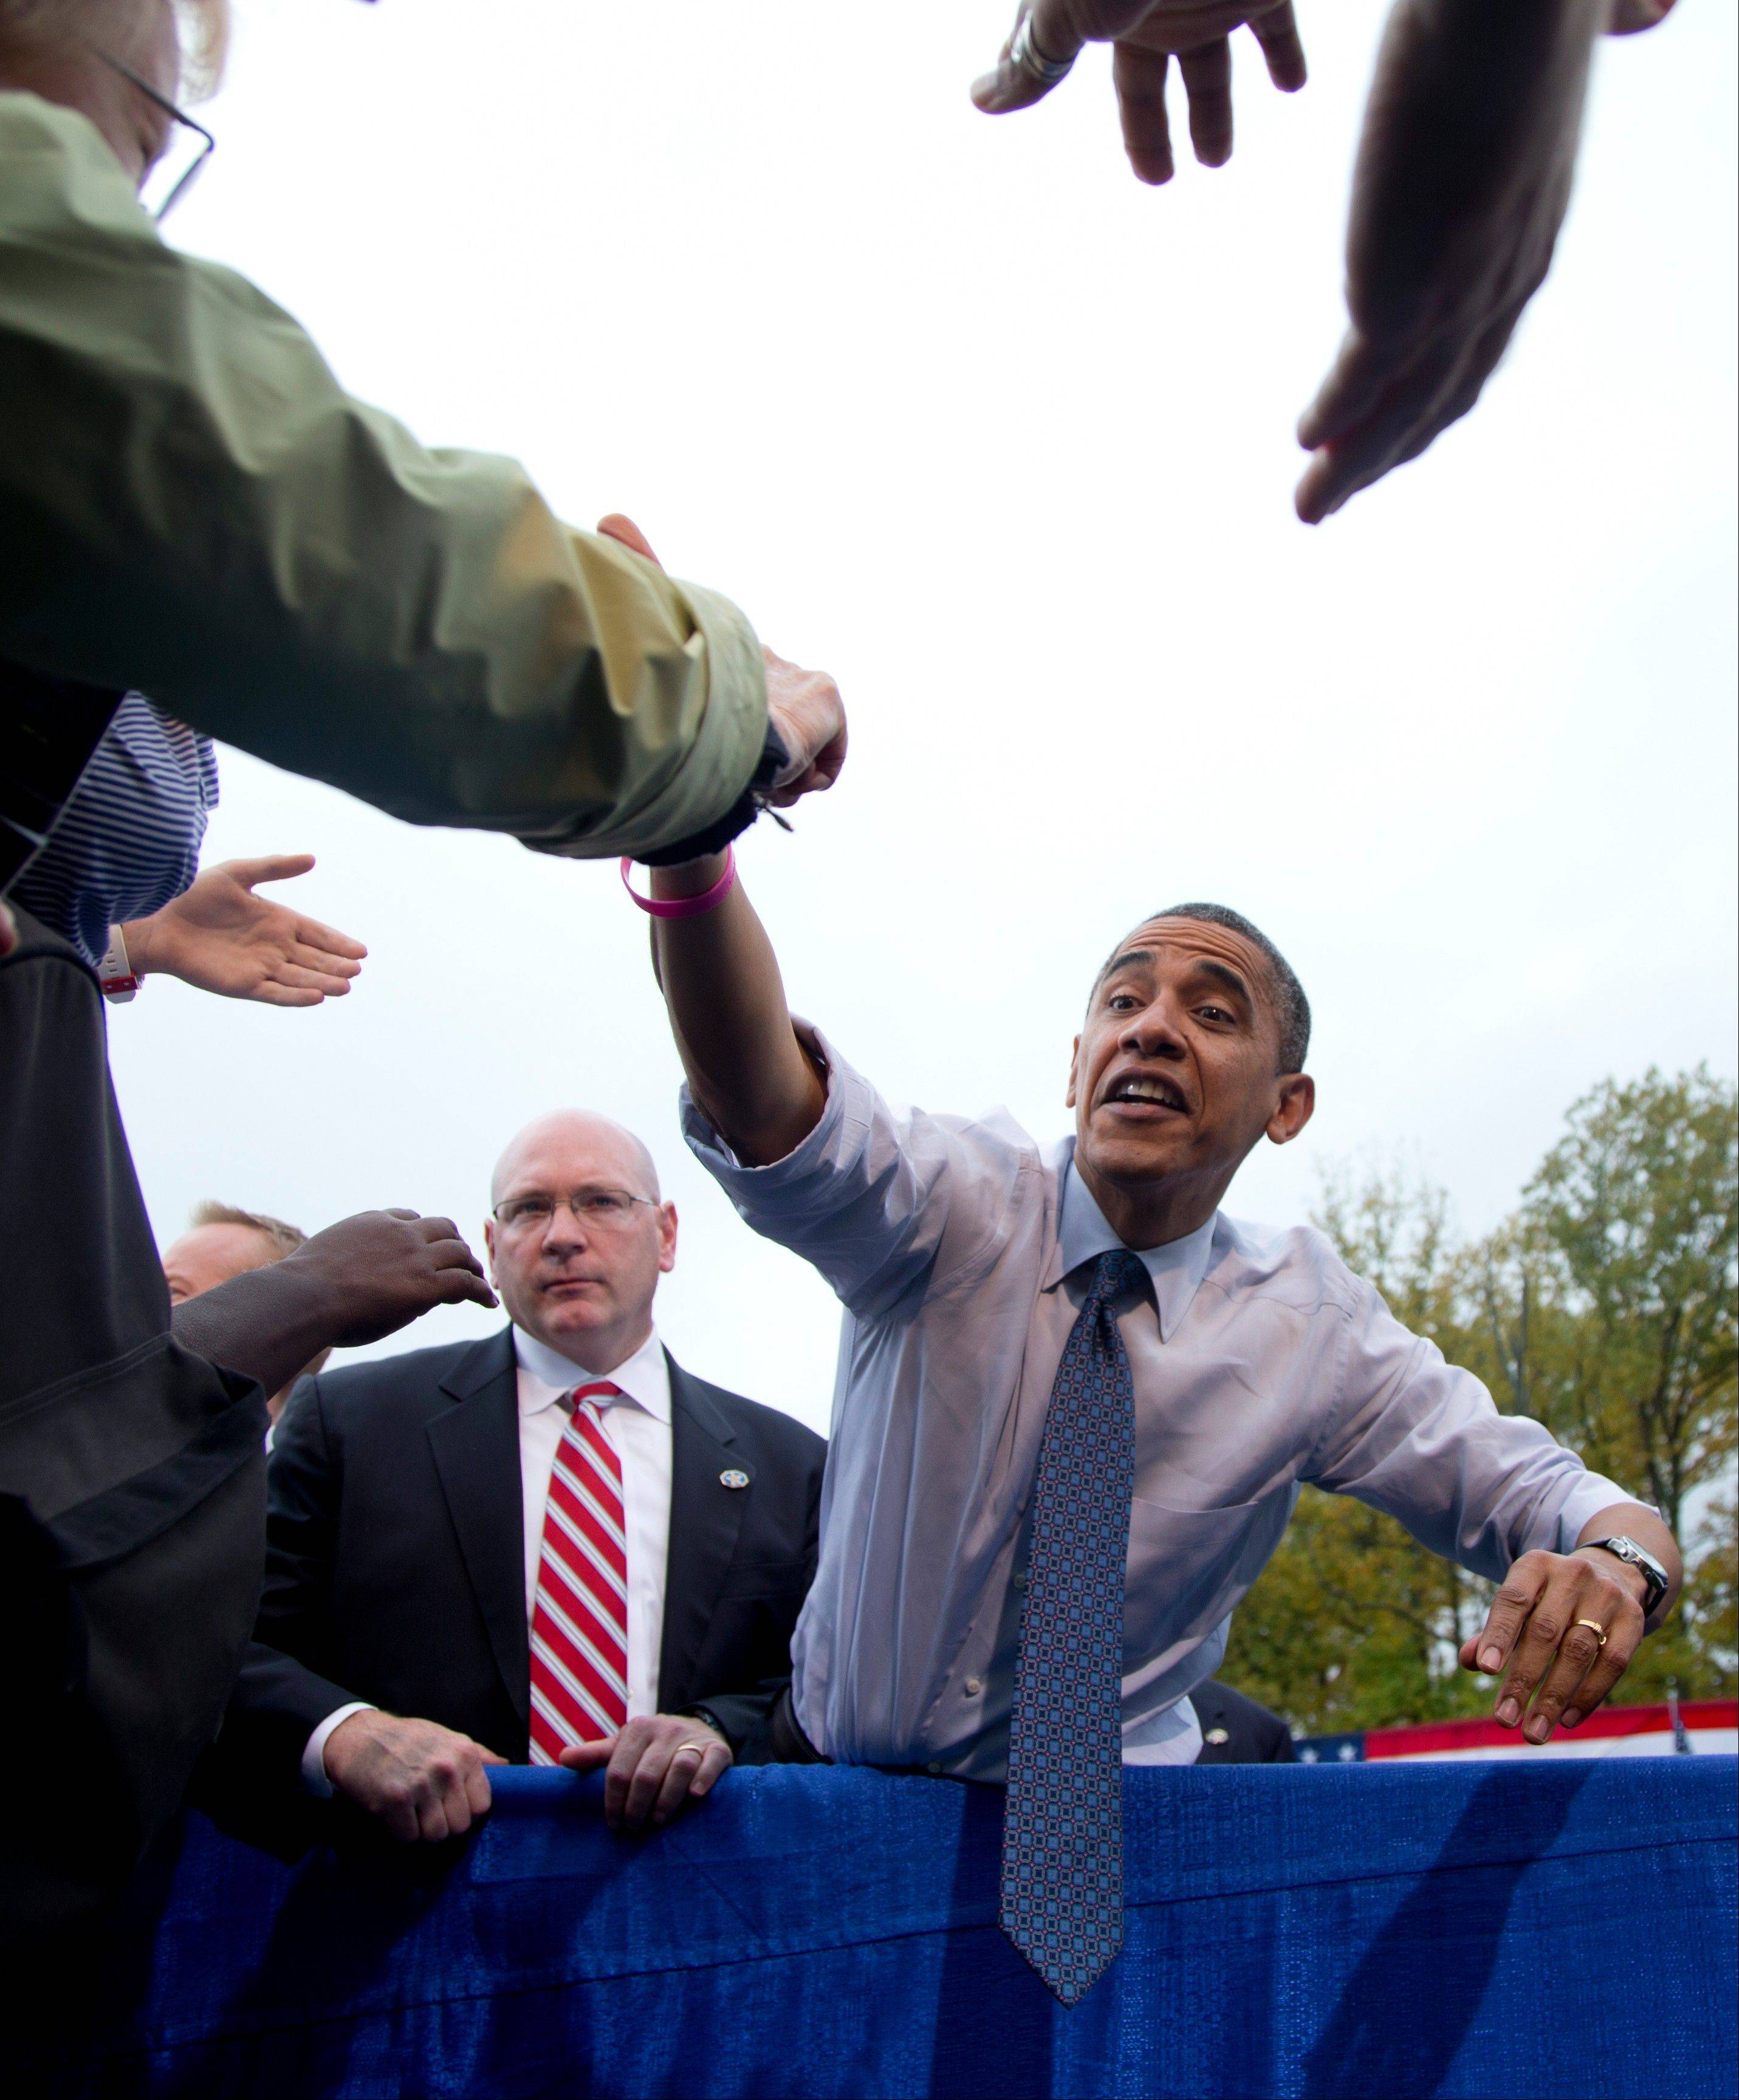 President Barack Obama stretches to shakes hands Friday with supporters after speaking about the choice facing women in the upcoming election, at George Mason University, in Fairfax, Va.